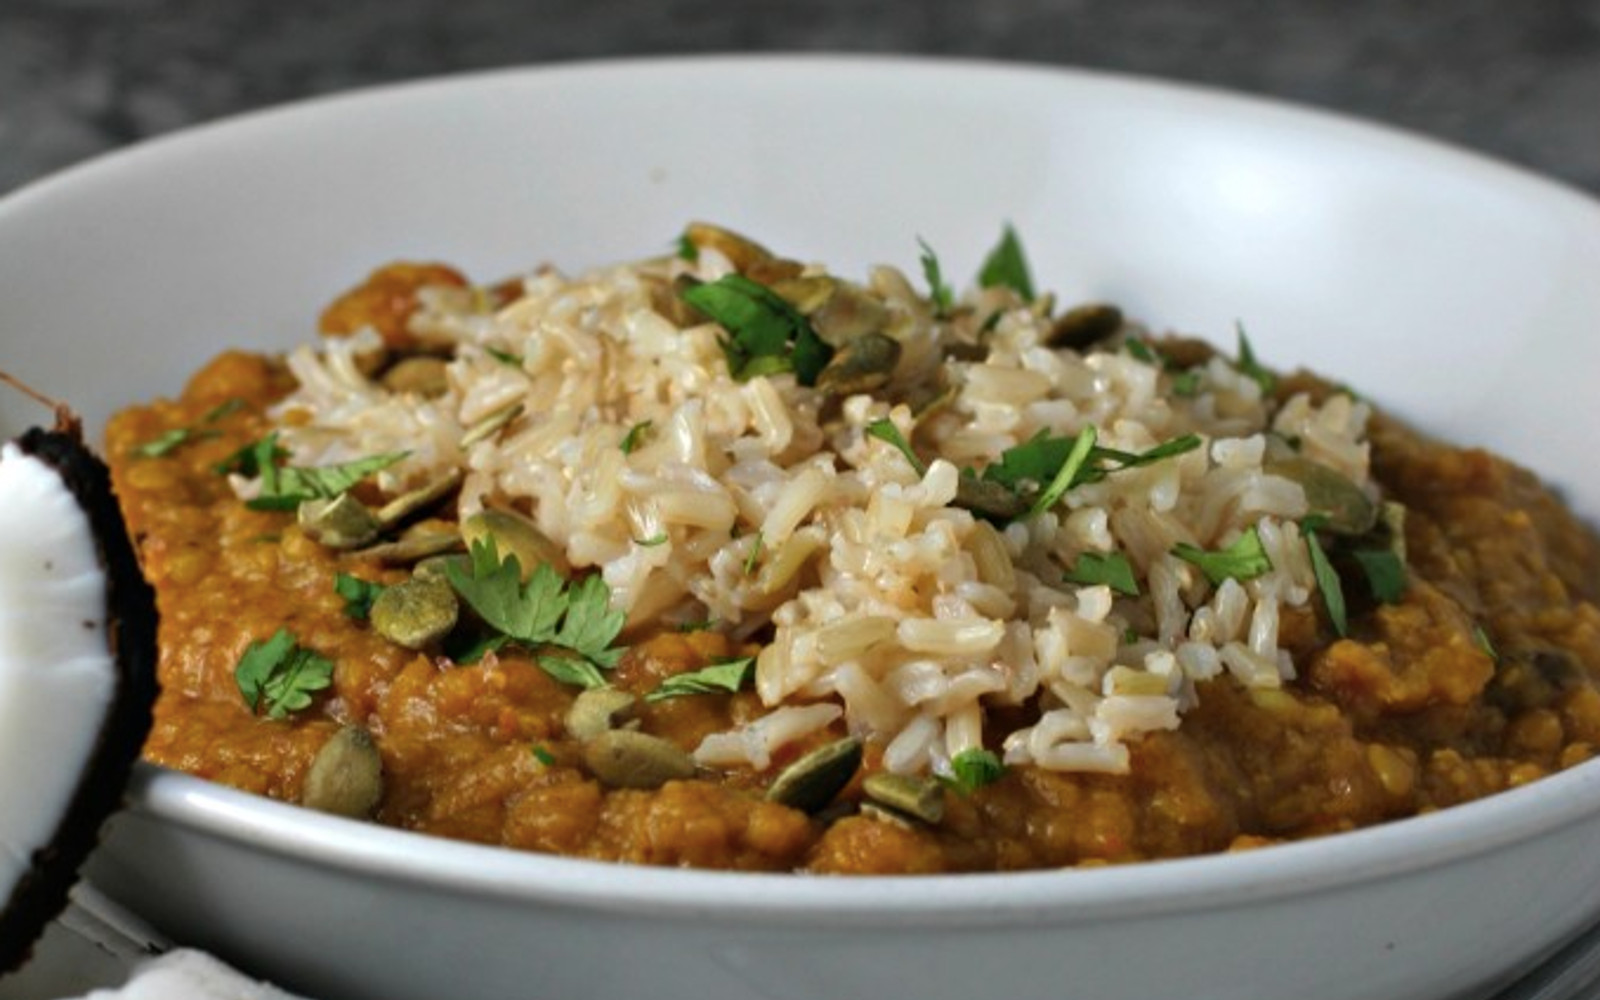 Spiced Lentil Freezer Meal [Vegan, Gluten-Free] topped with rice and fresh herbs